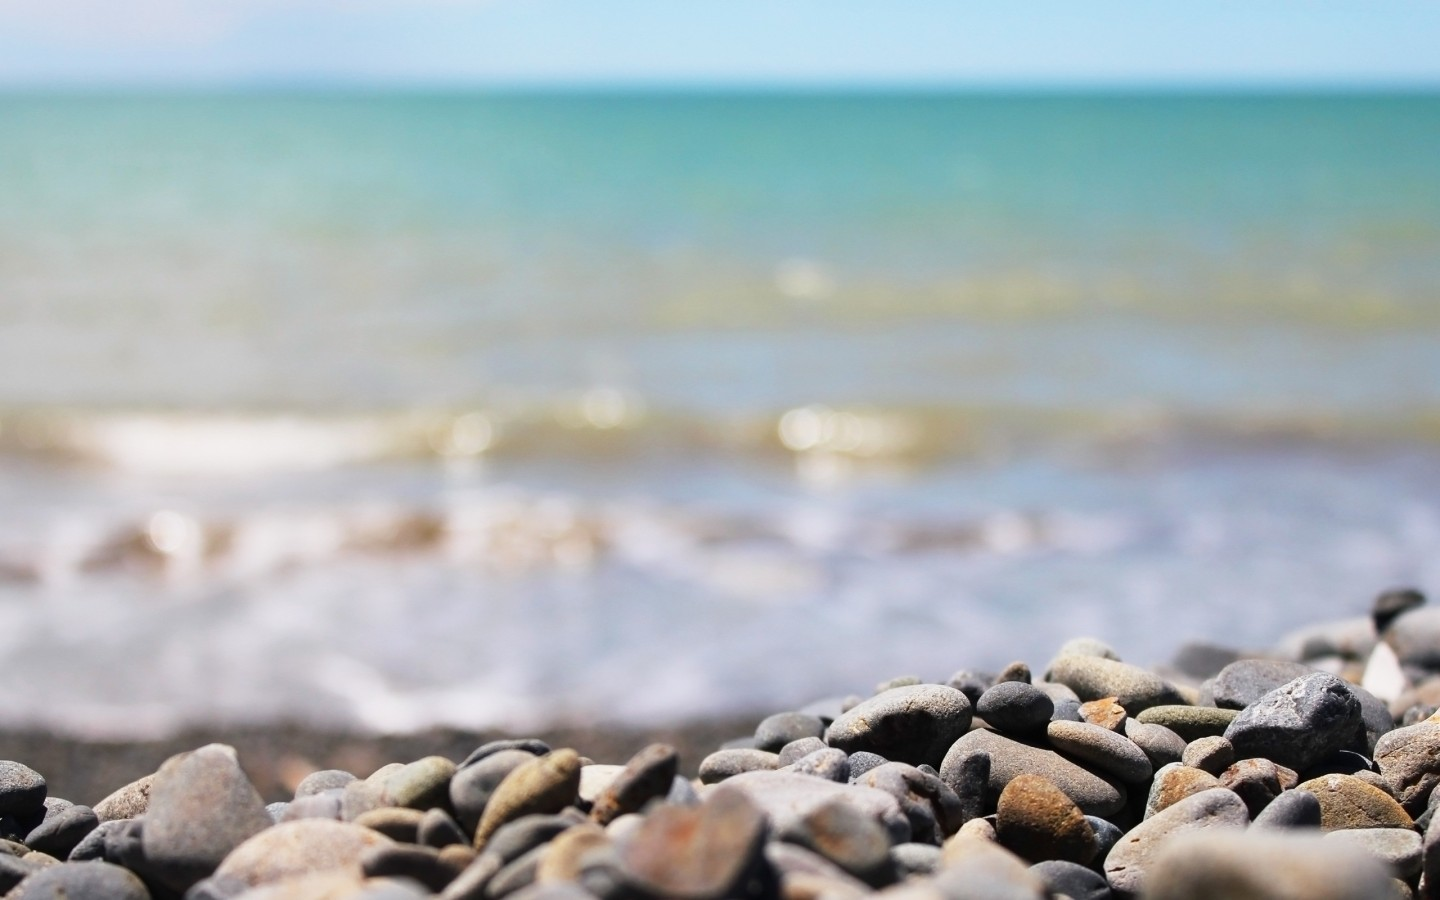 Download Macro Rocks on the Beach Wallpaper : Widescreen : 1152 x 720 | 1280 x 800 ...